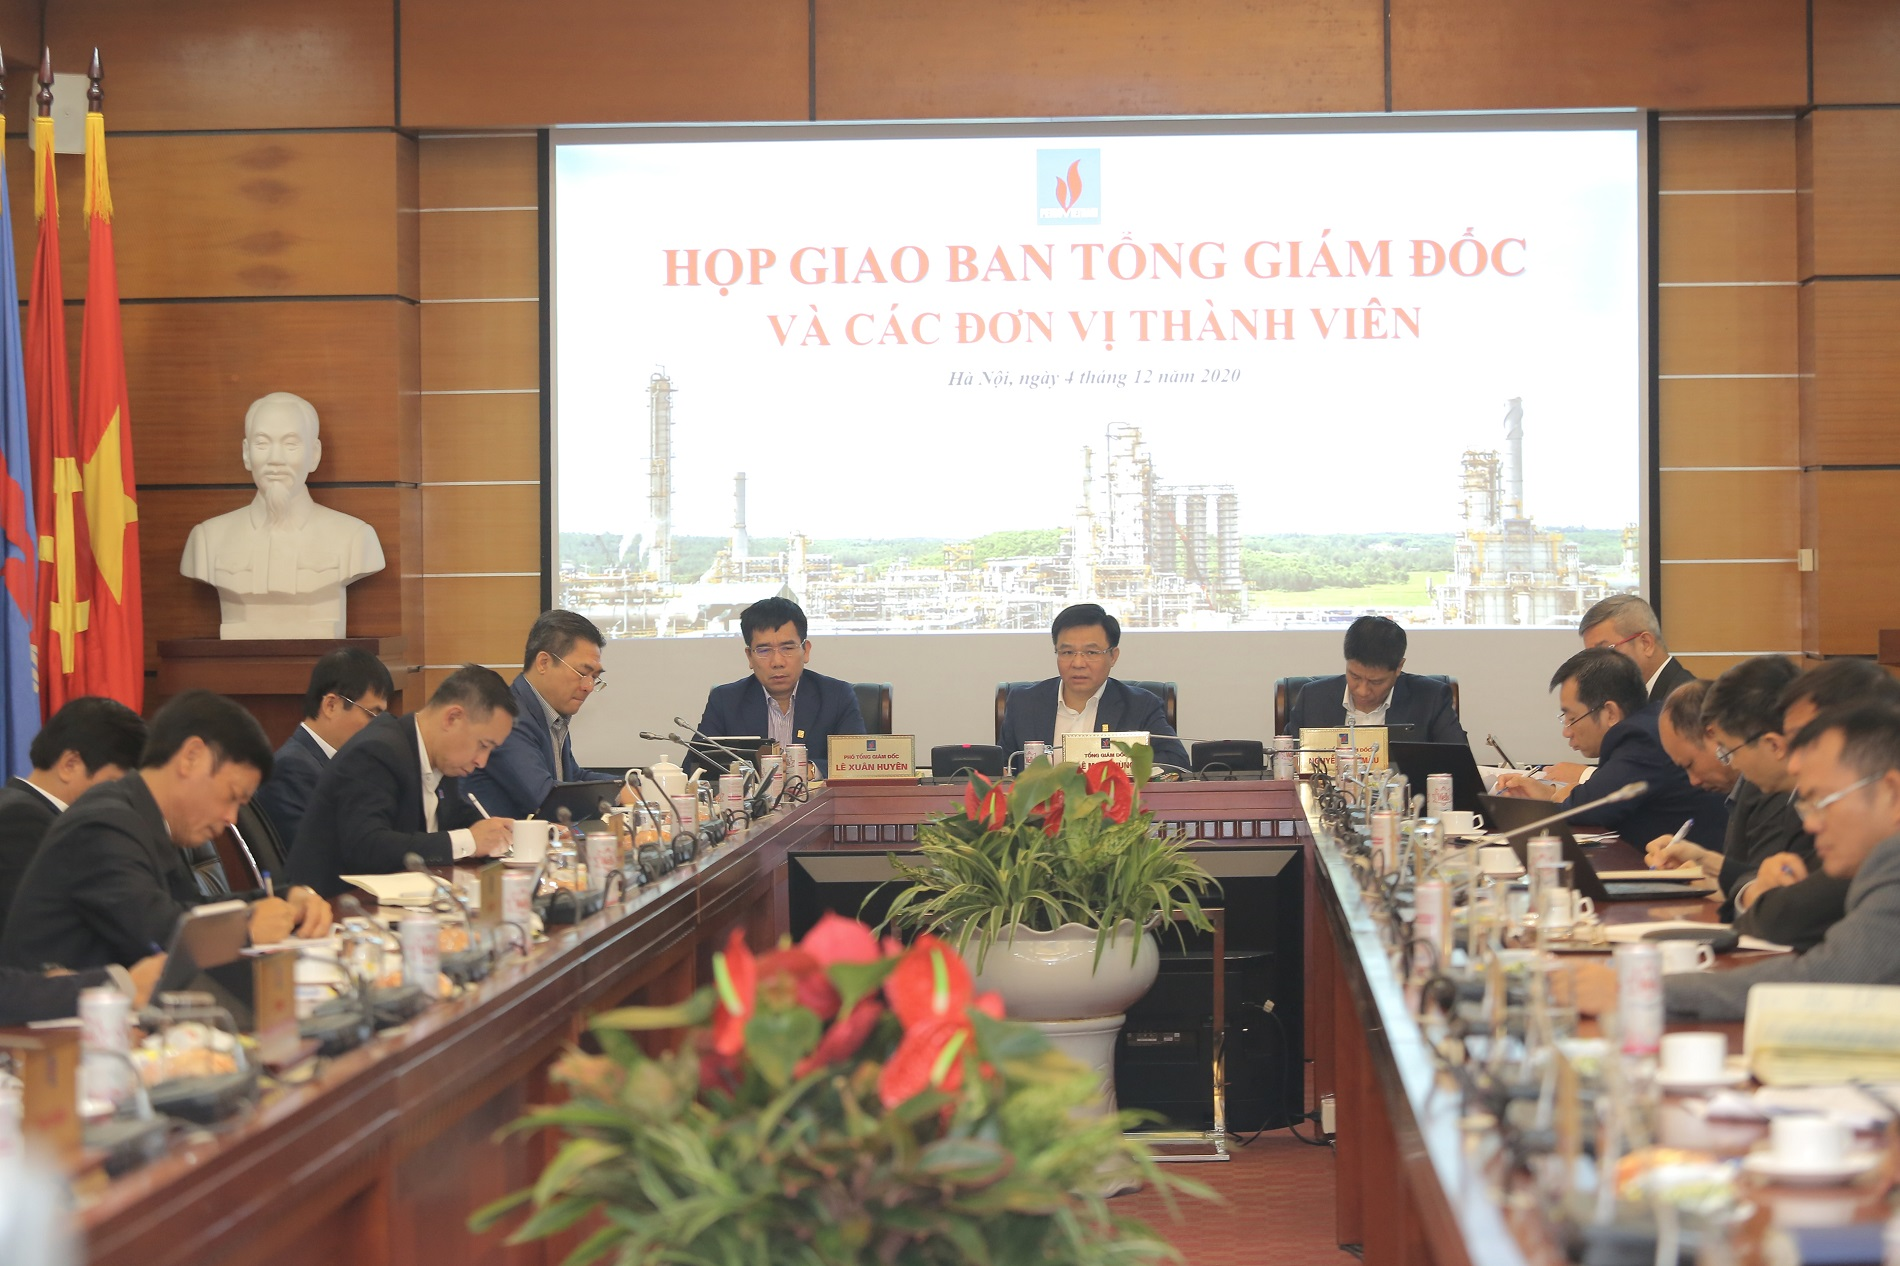 Petrovietnam makes great effort to fulfill 2020 target and prepares plan for 2021